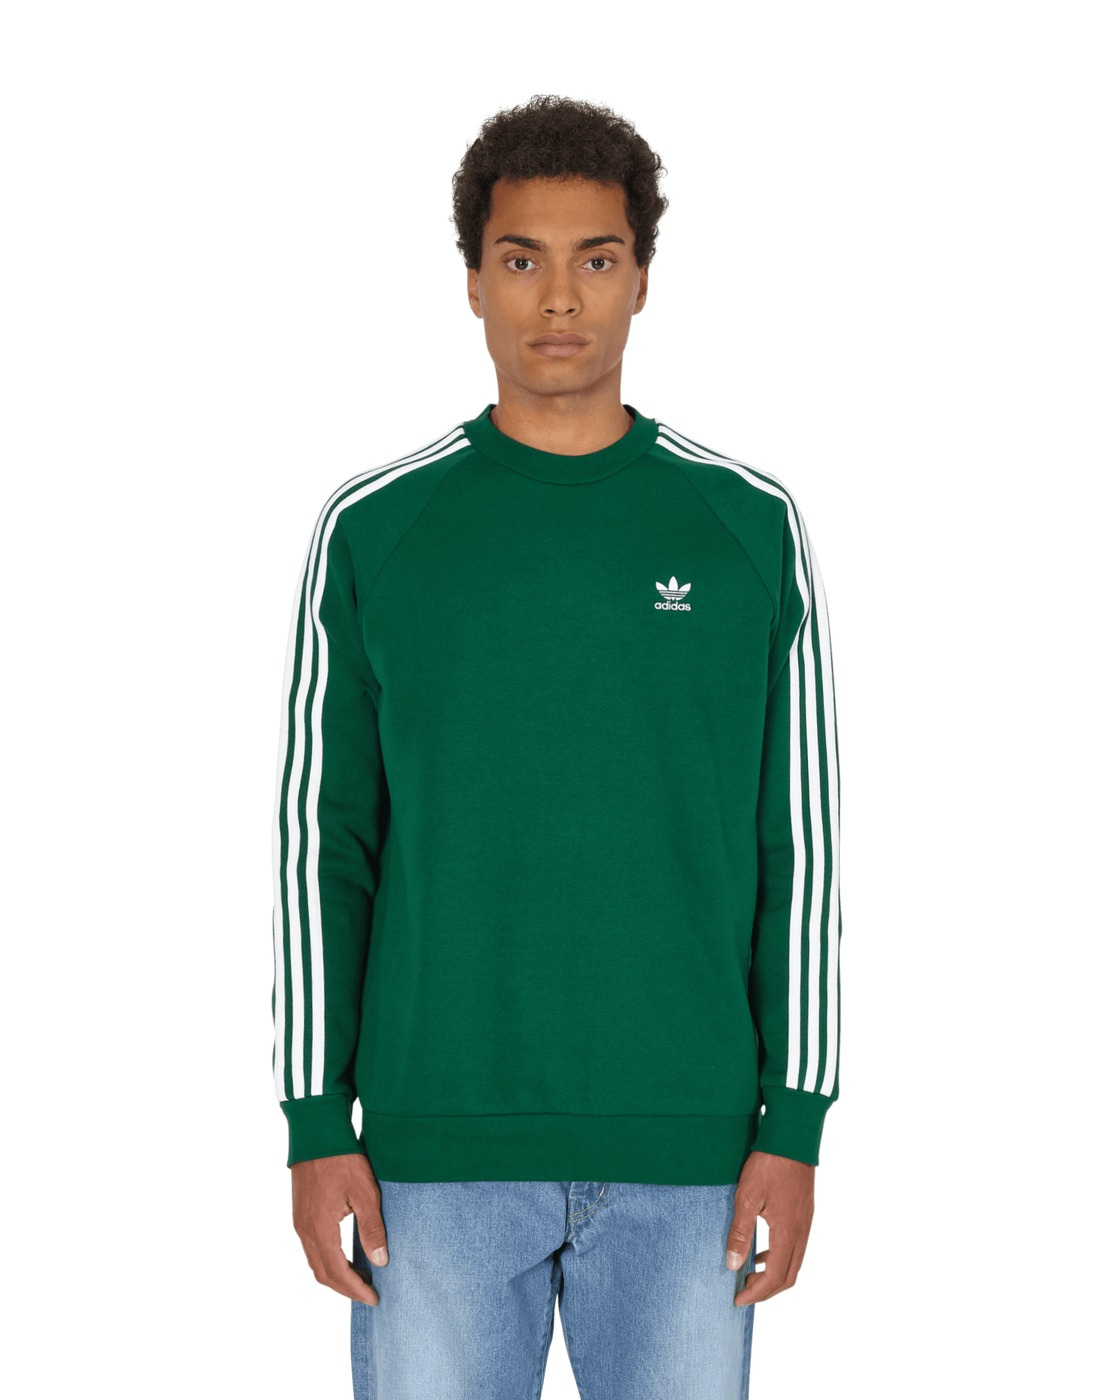 Photo: Adidas Originals 3 Stripes Crewneck Sweatshirt Dark Green